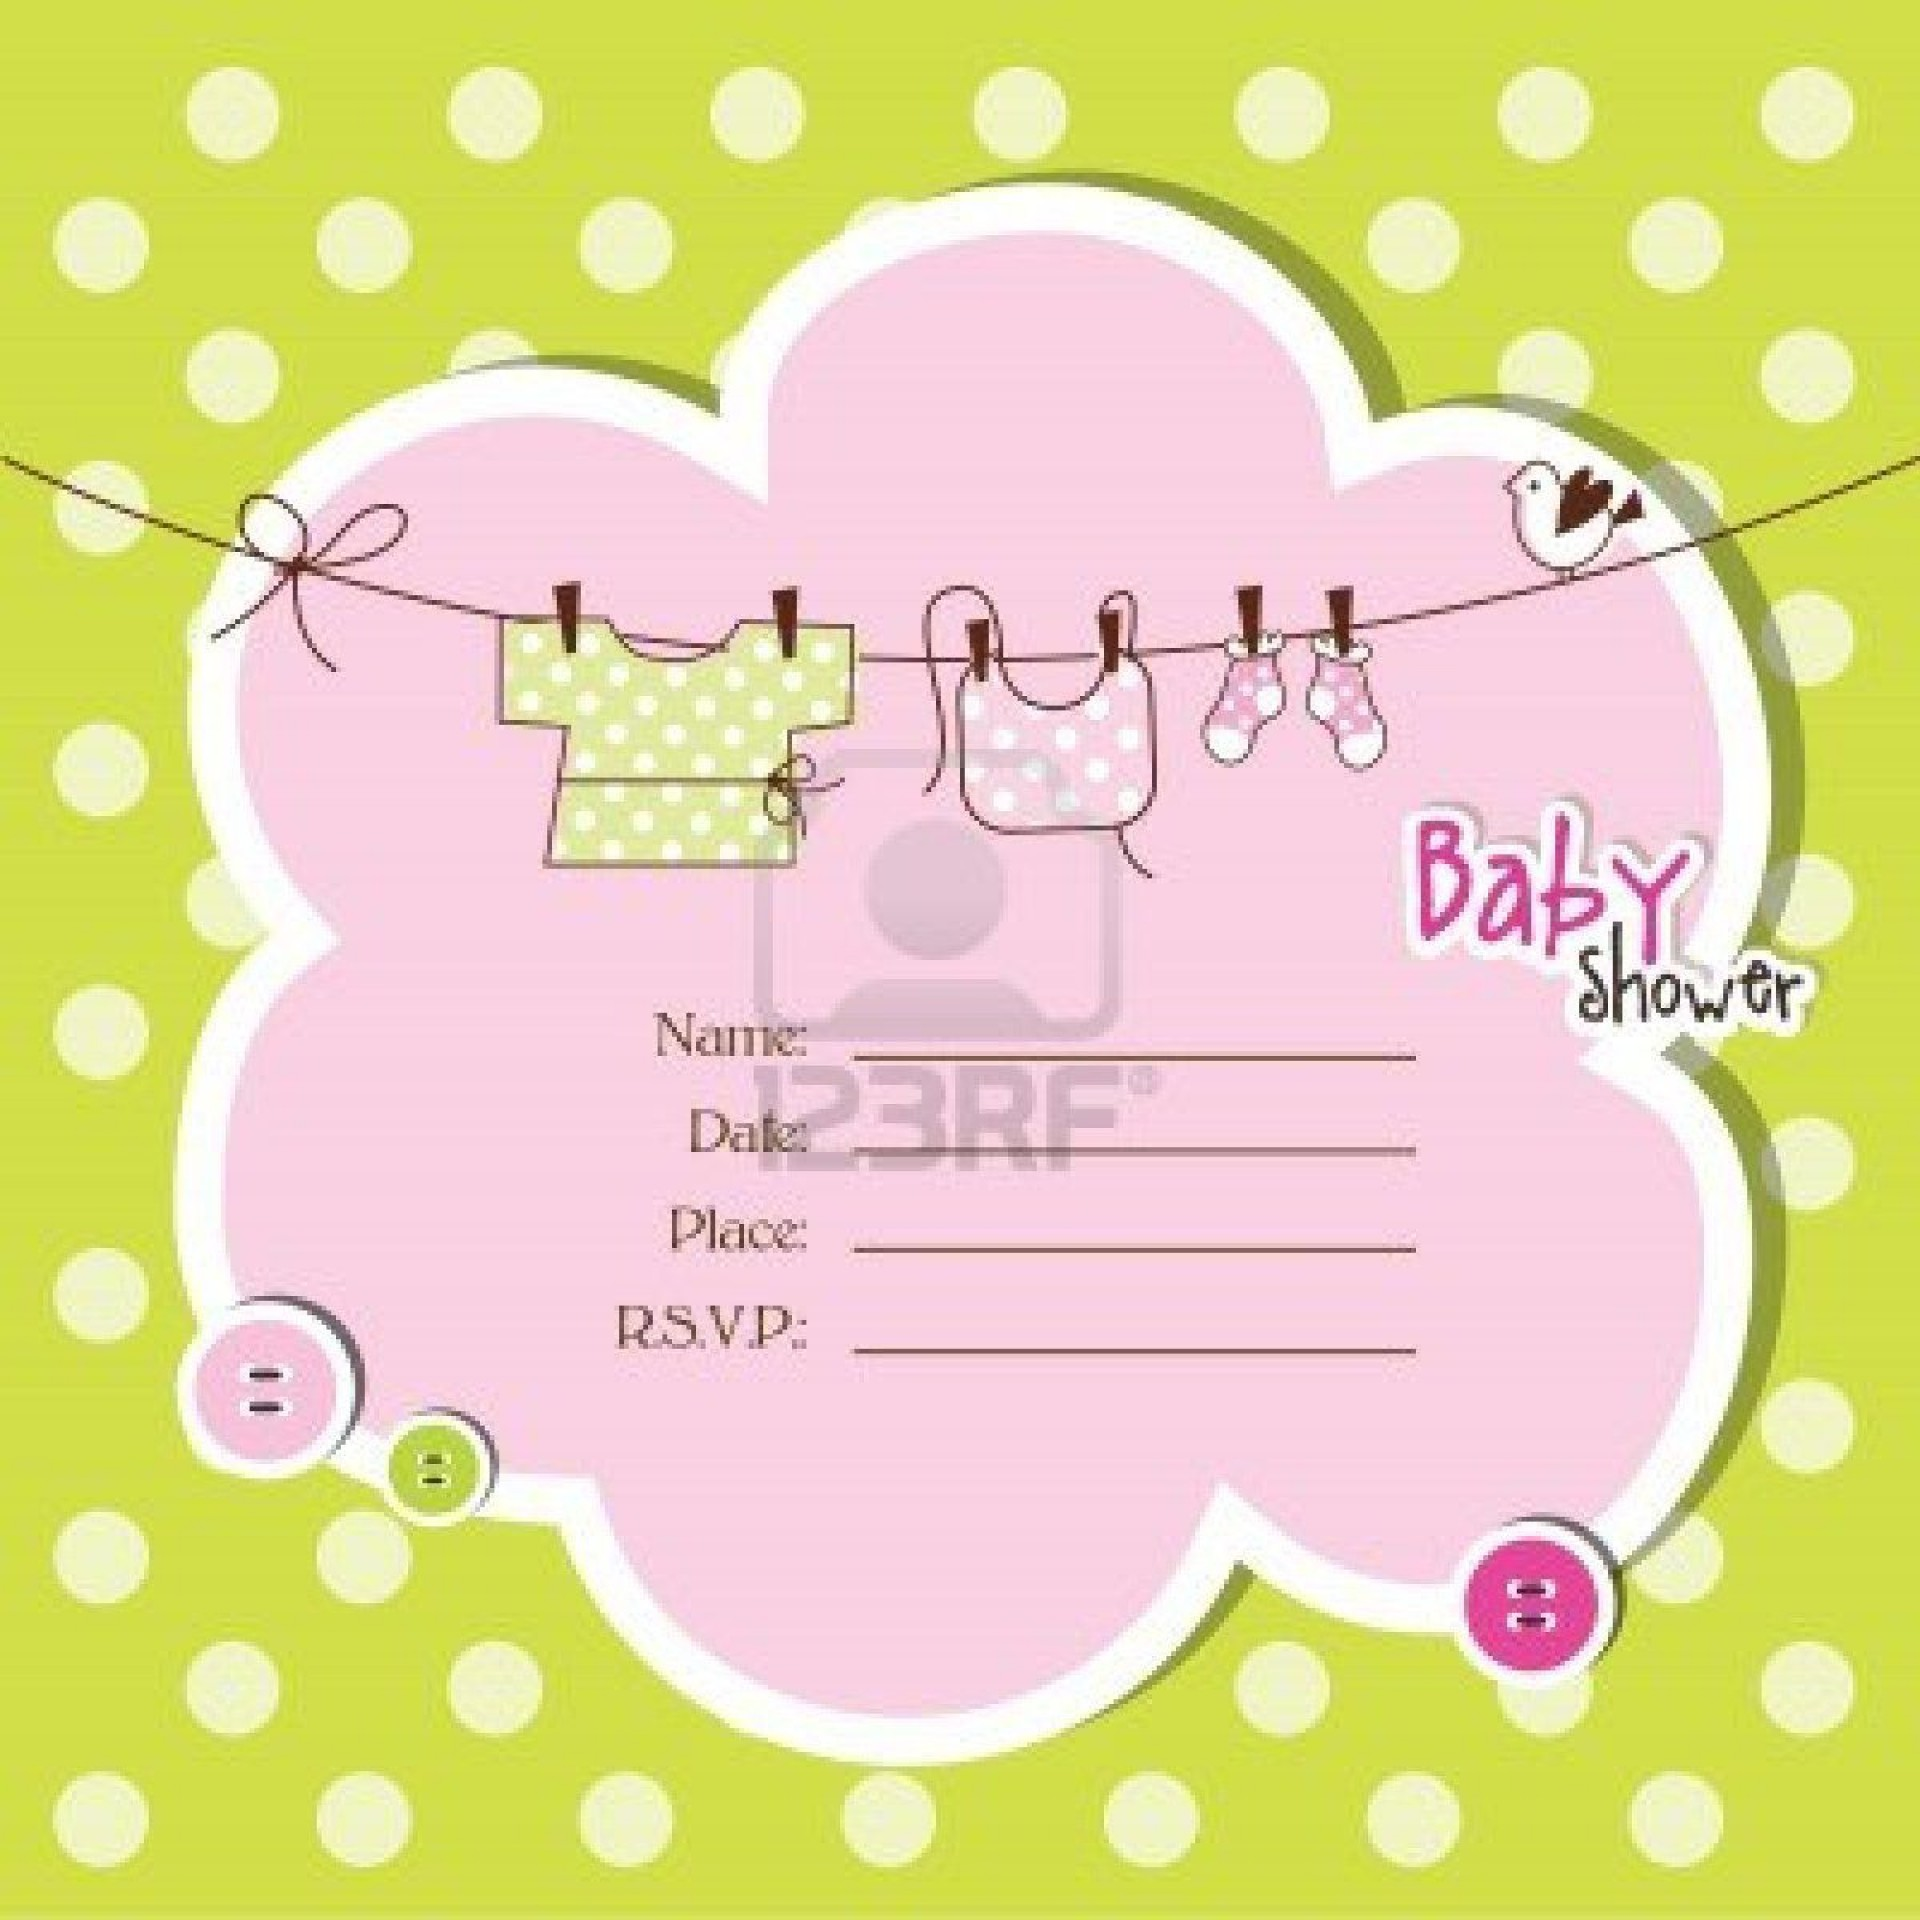 006 Beautiful Baby Shower Template Word High Def  Printable Search Free Invitation1920